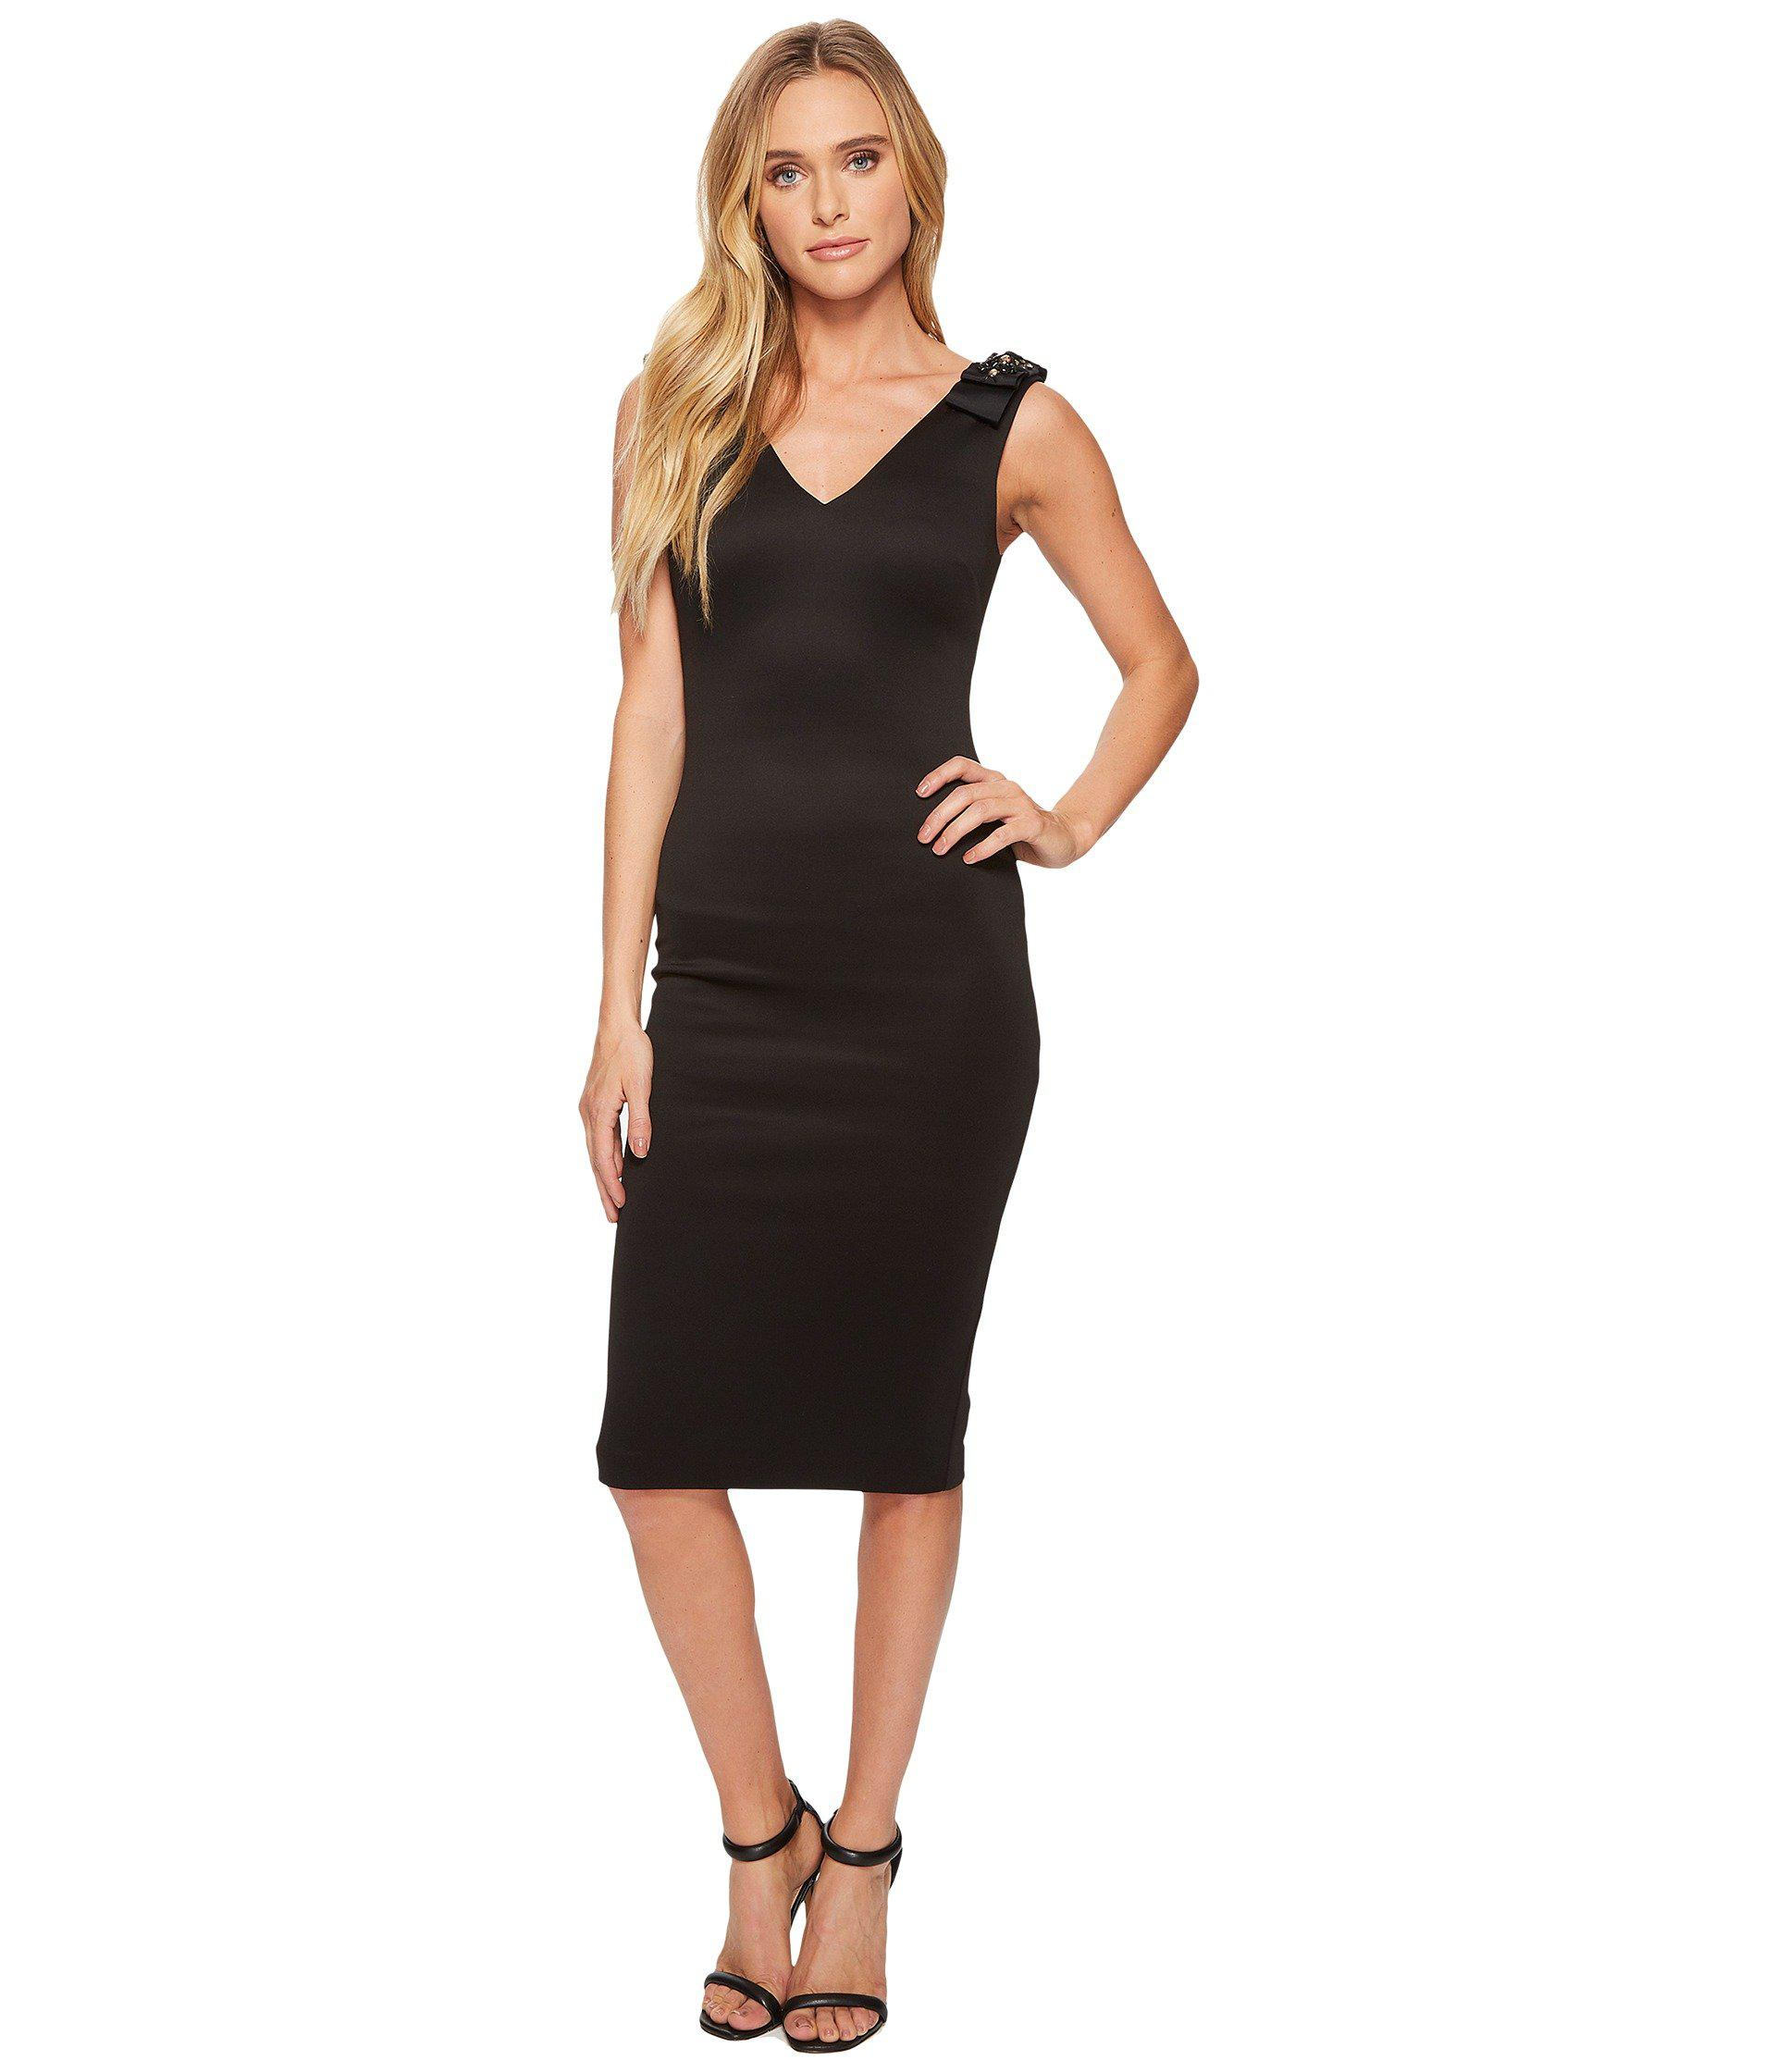 b1d27822ab635 Lyst - Ted Baker Belliah Bow Shoulder Bodycon Dress in Black